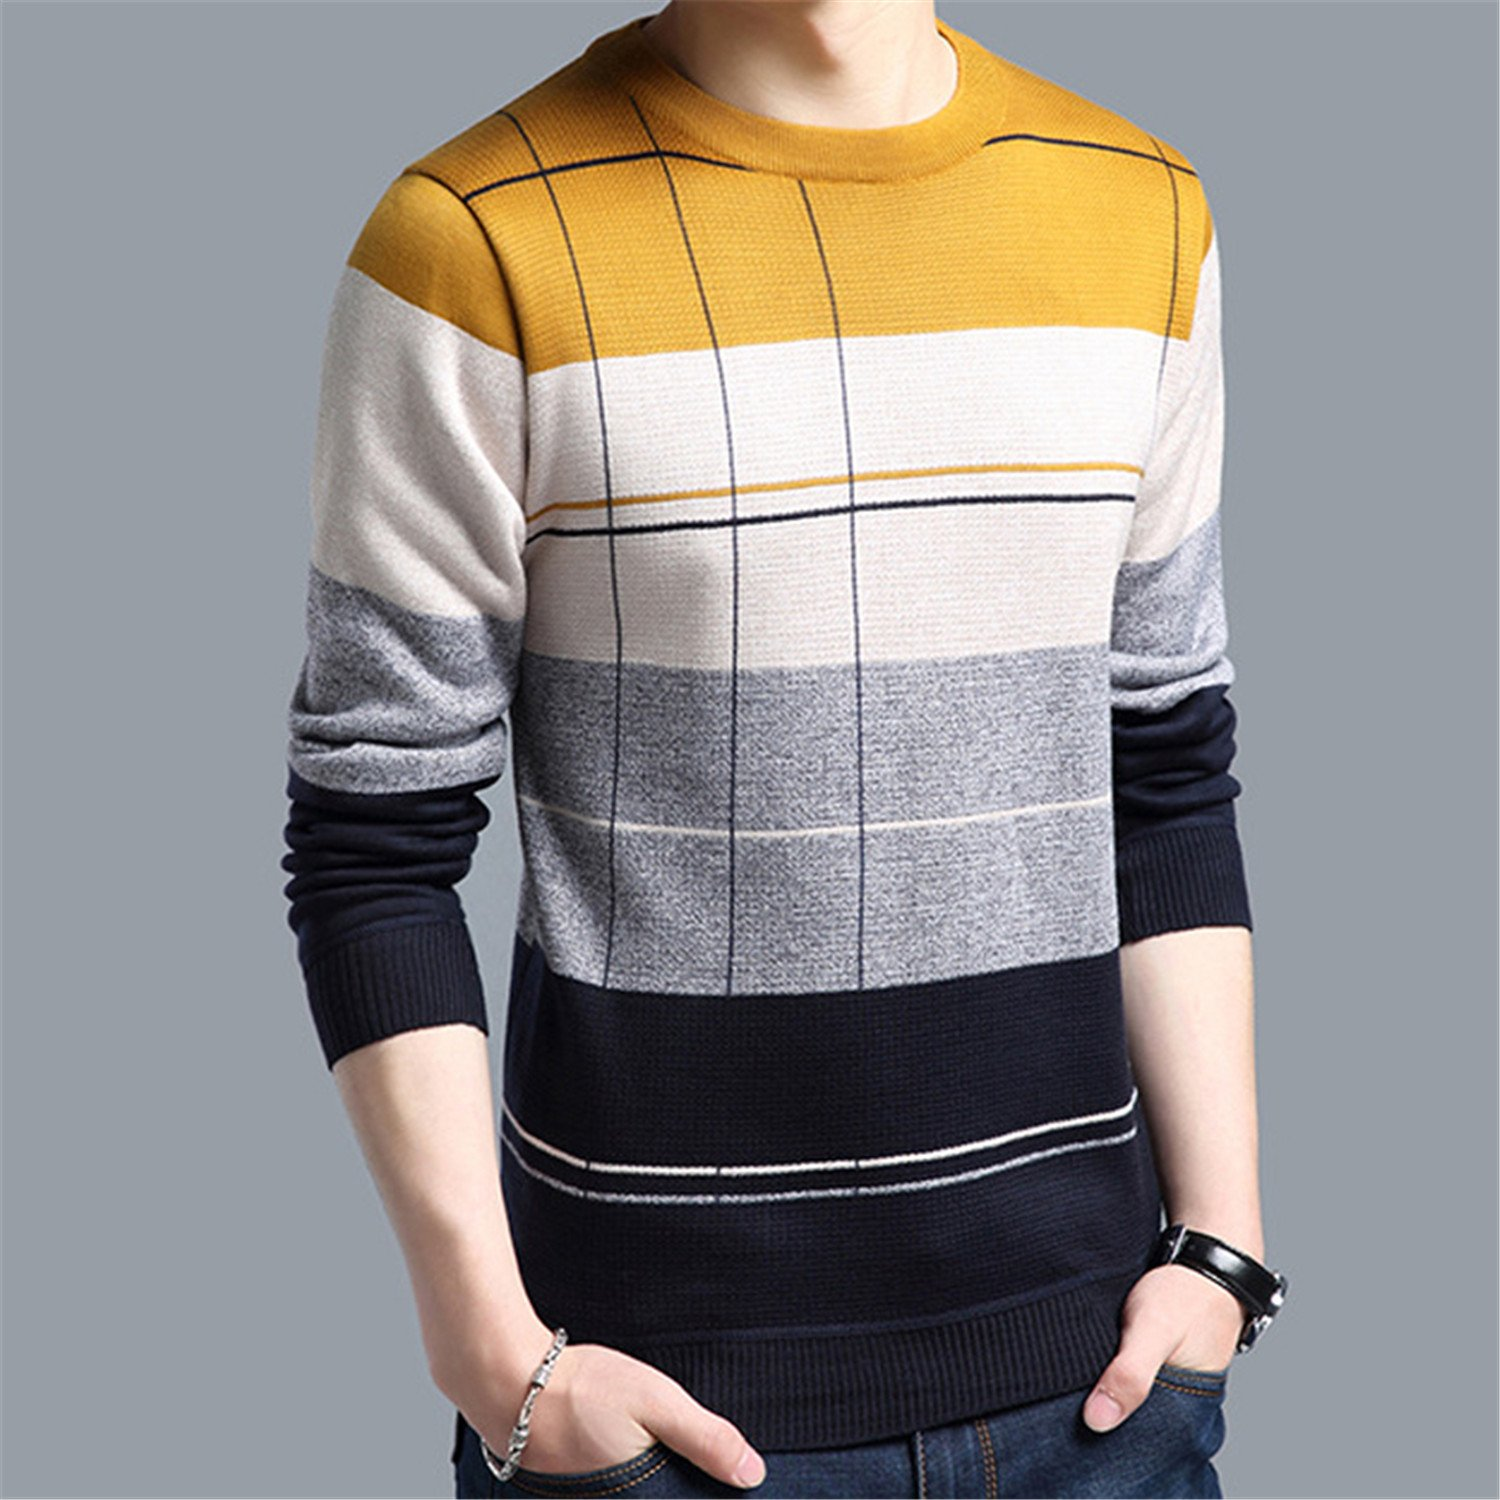 Cyose Fashion Mens Pullover Sweaters Casual Crocheted Striped Knitted Sweater Men